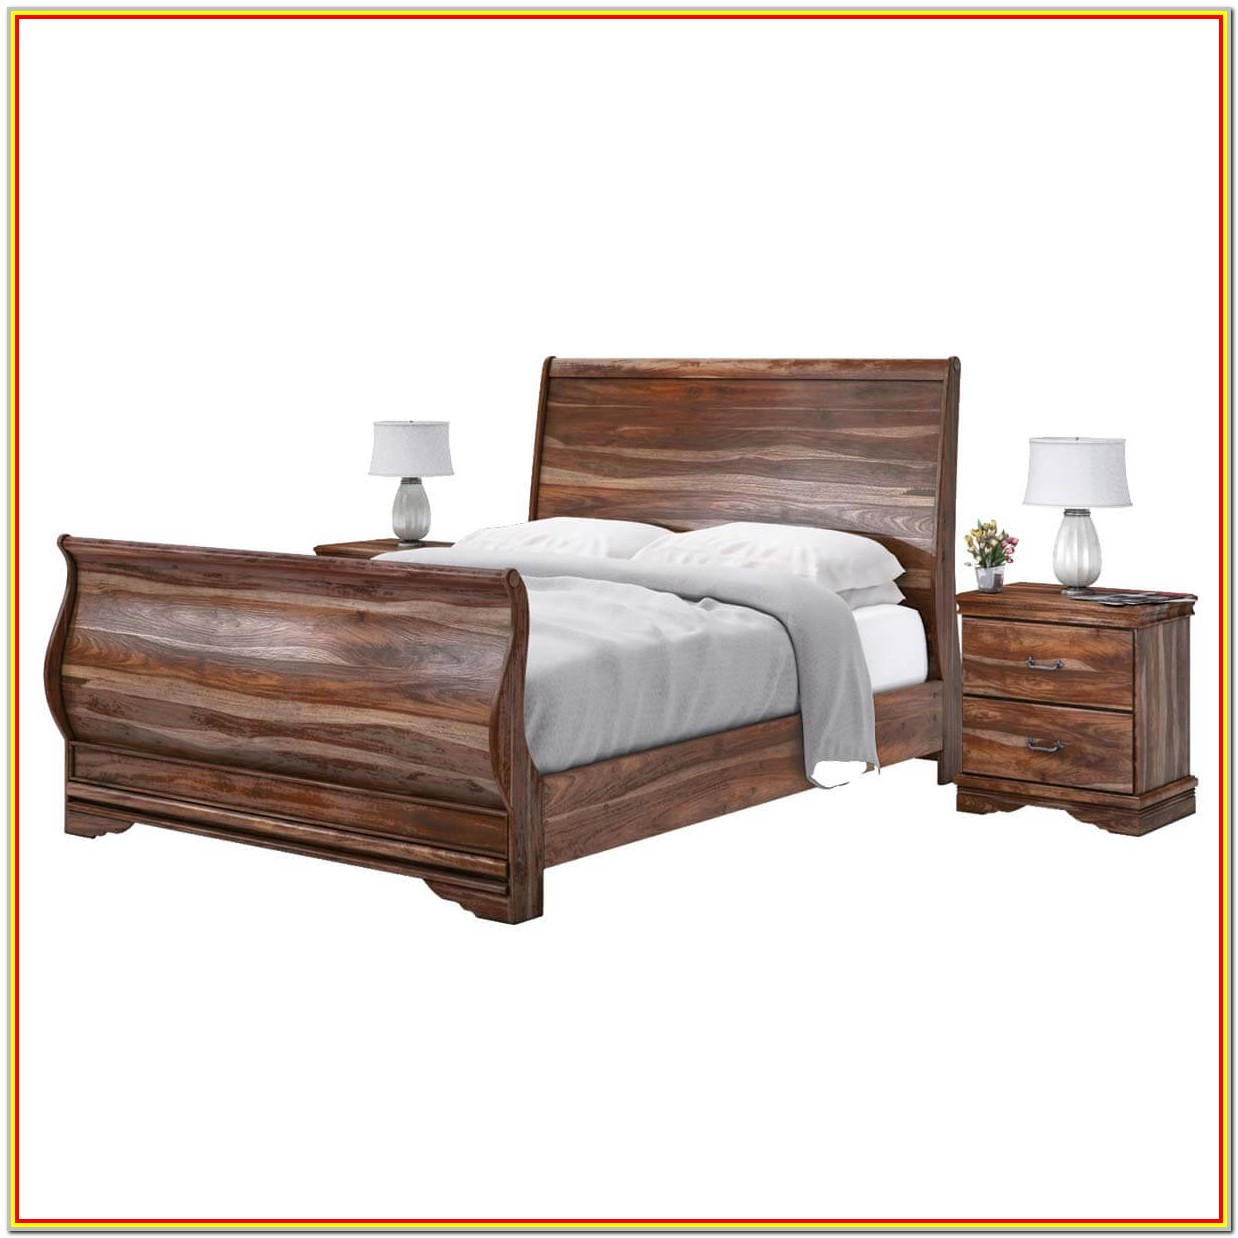 King Size Sleigh Bed Frame Measurements